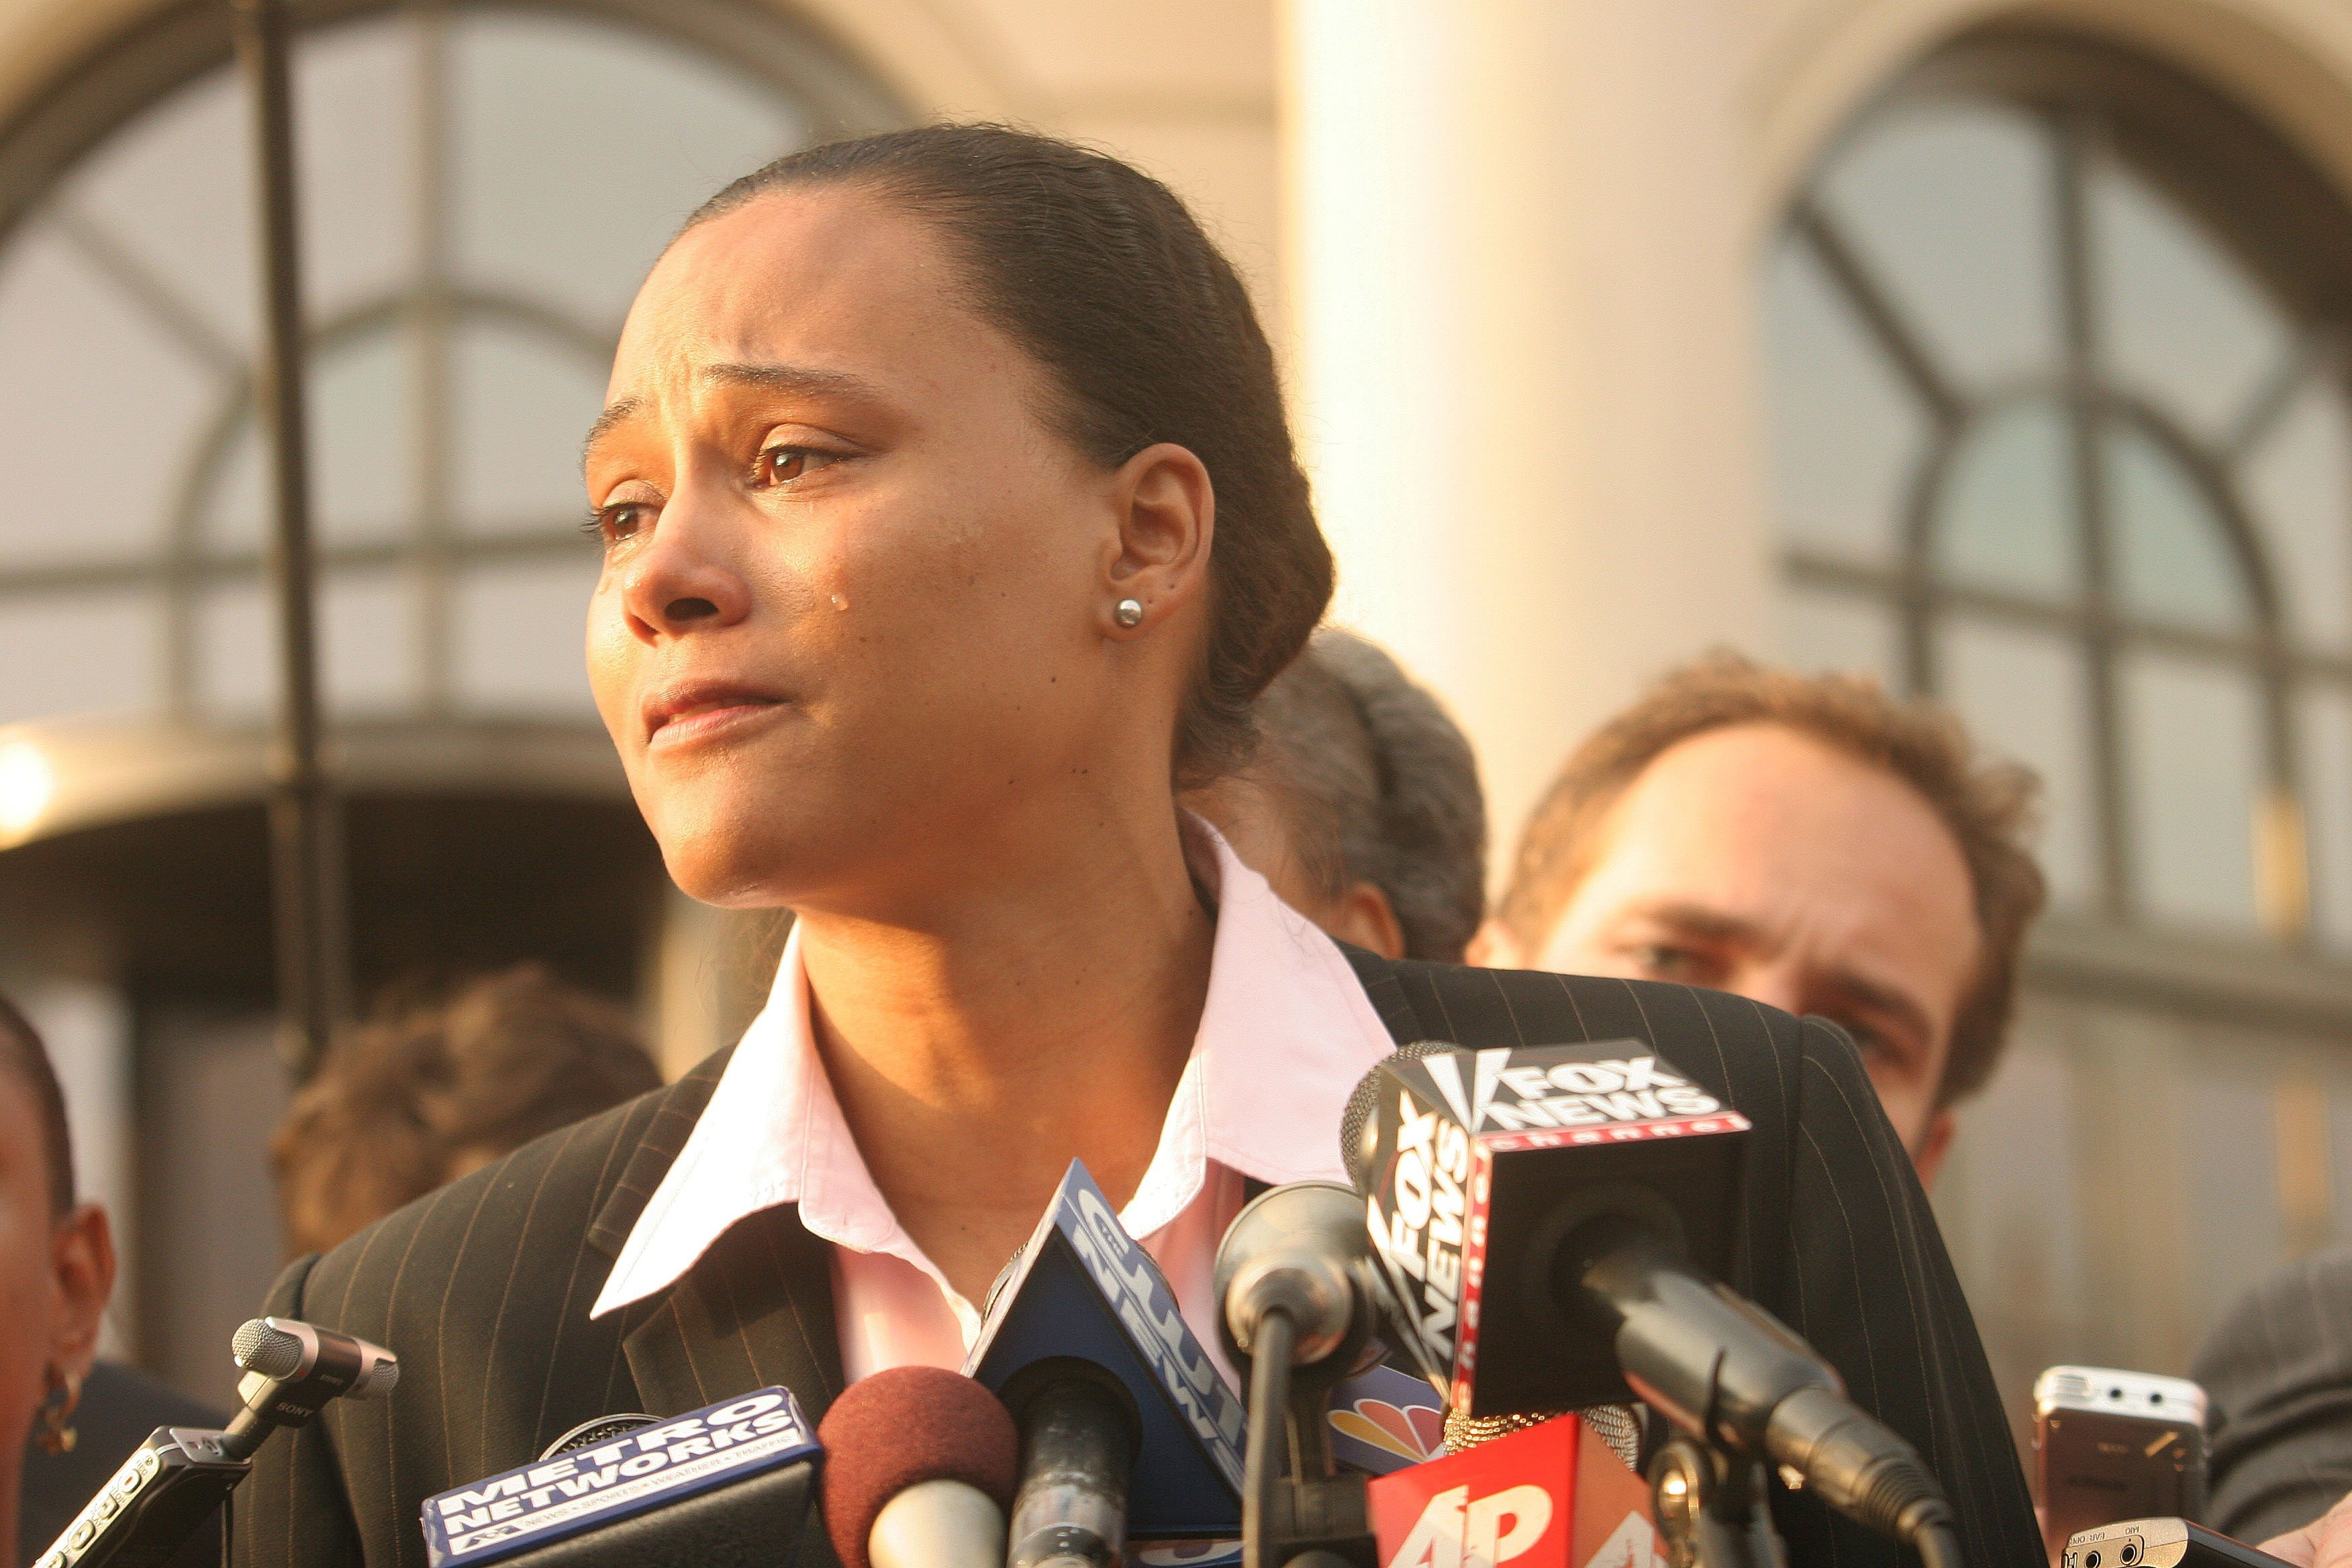 Marion Jones speaks to the media outside a US federal courthouse October 5, 2007, in White Plains, New York | Photo: Hiroko Masuike/Getty Images